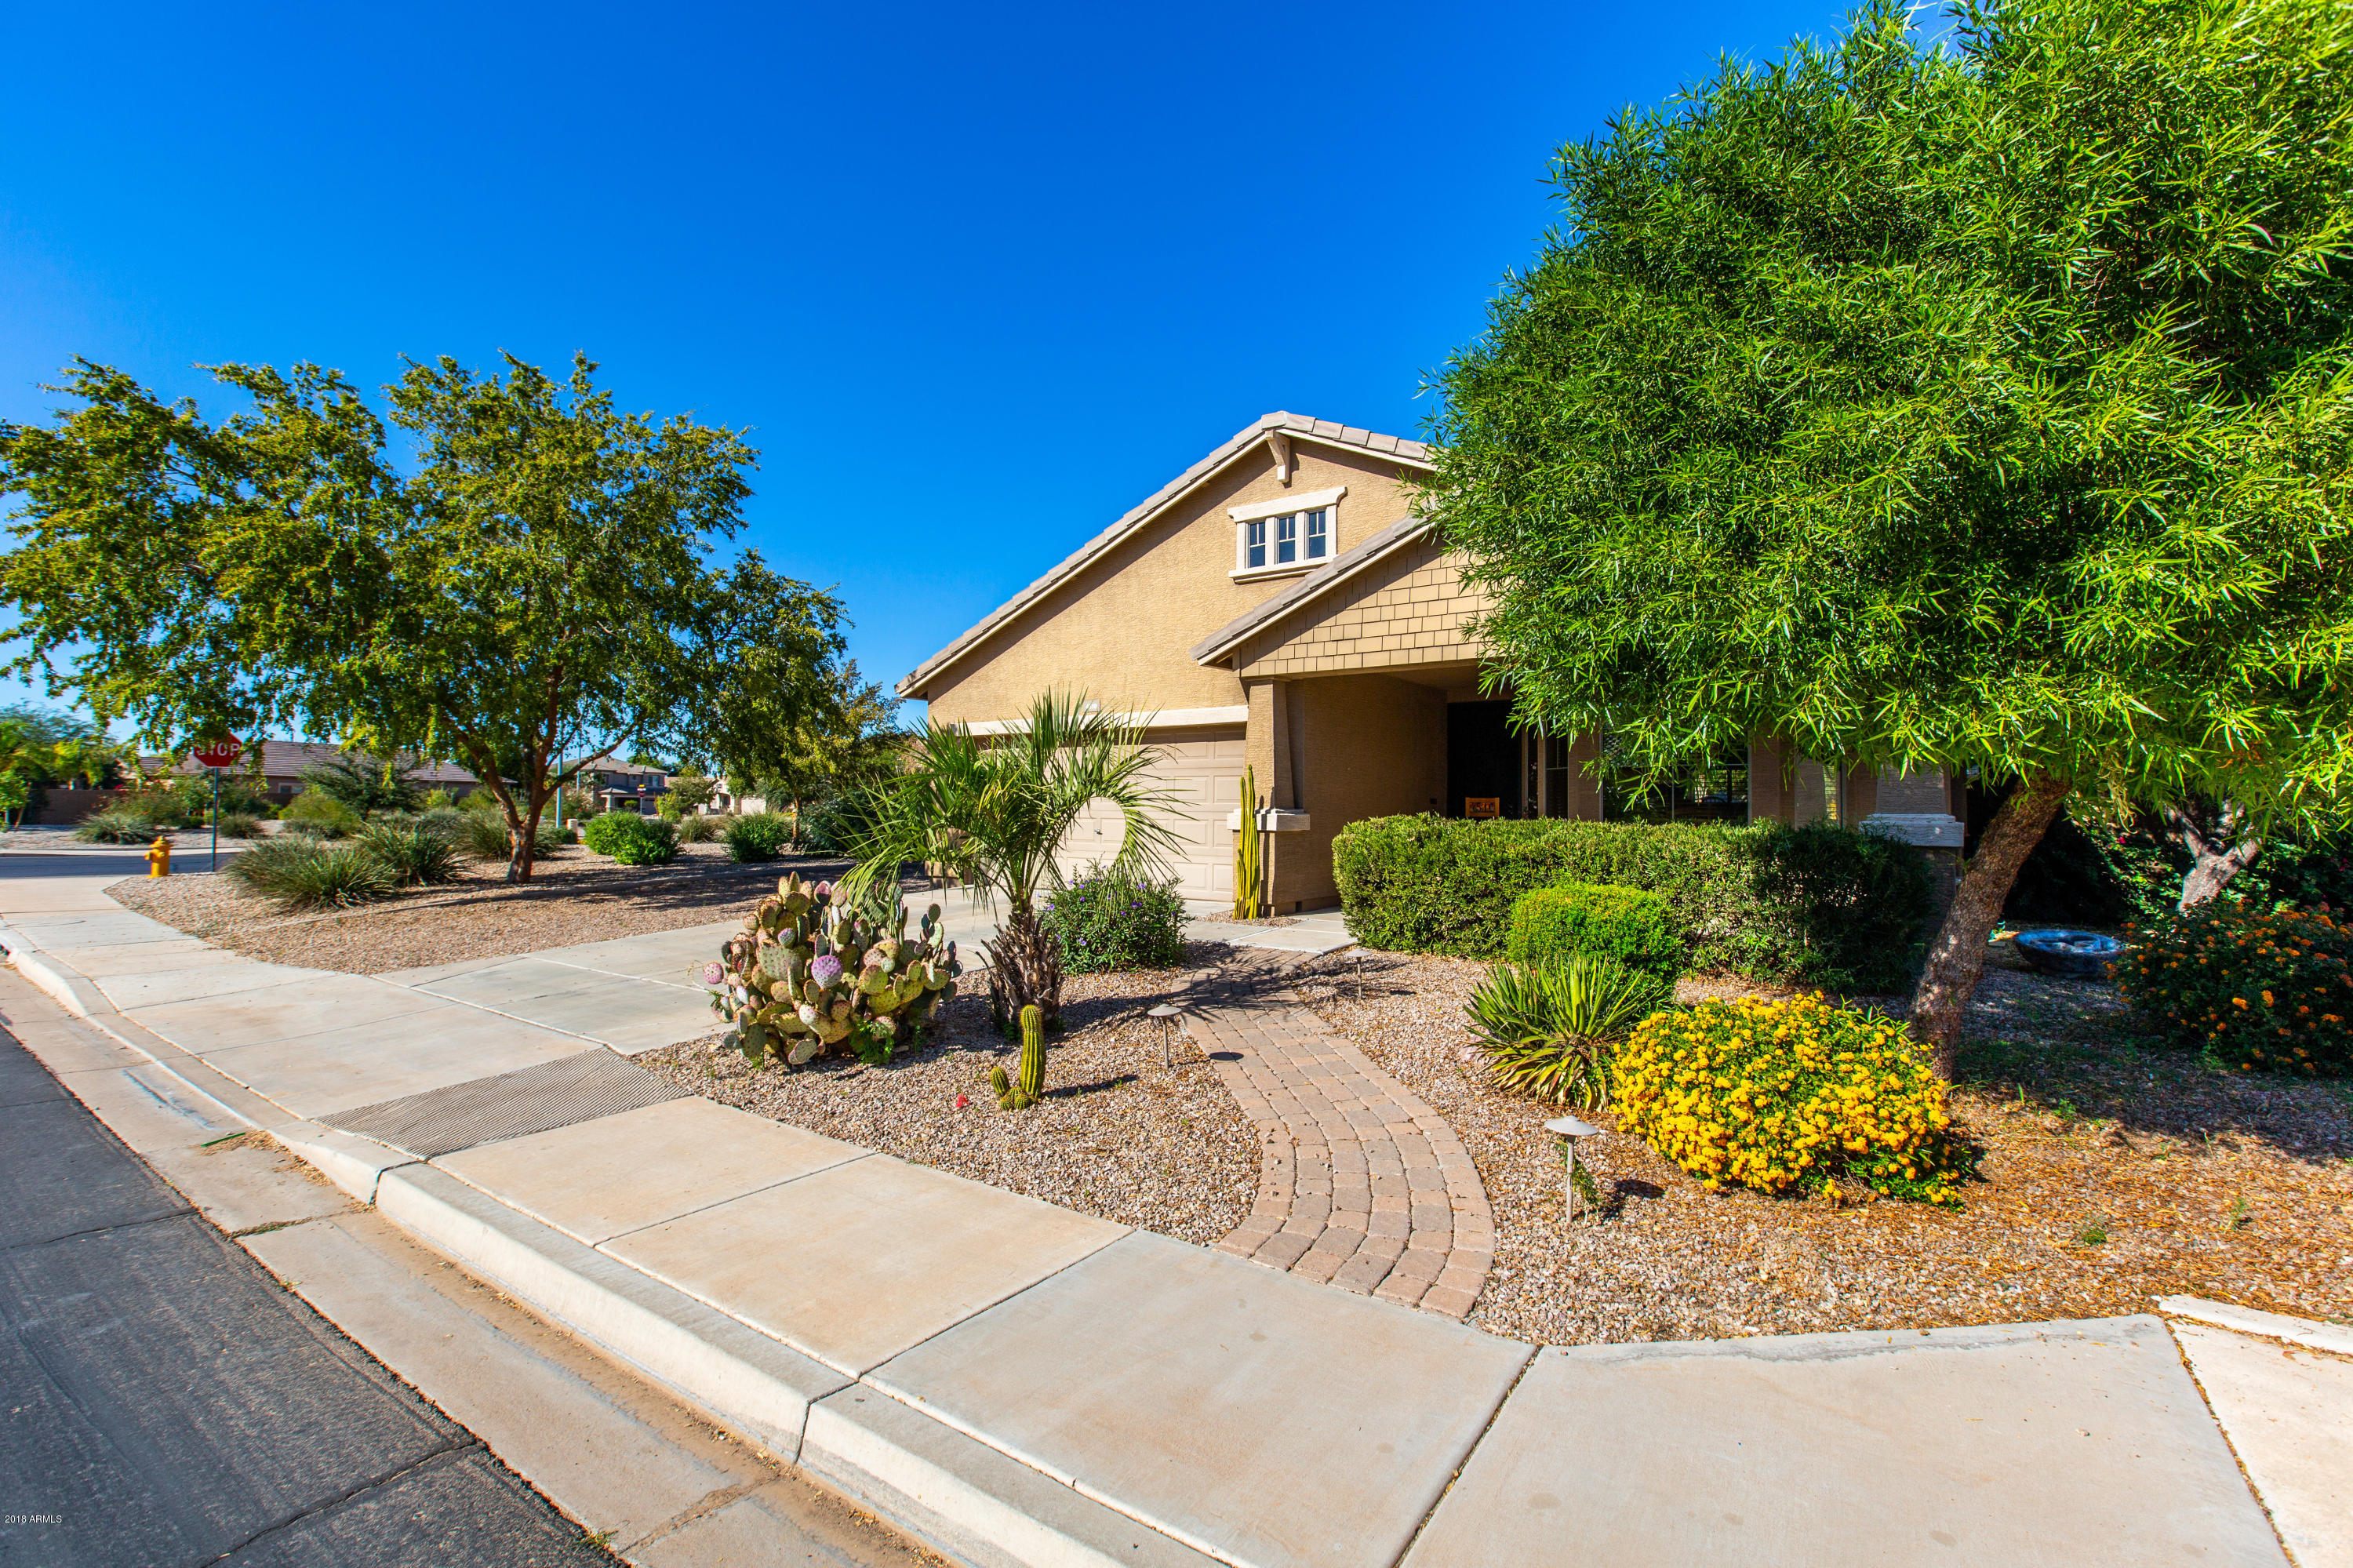 MLS 5845510 4510 E HAZELTINE Way, Chandler, AZ 85249 Chandler AZ Sun Groves